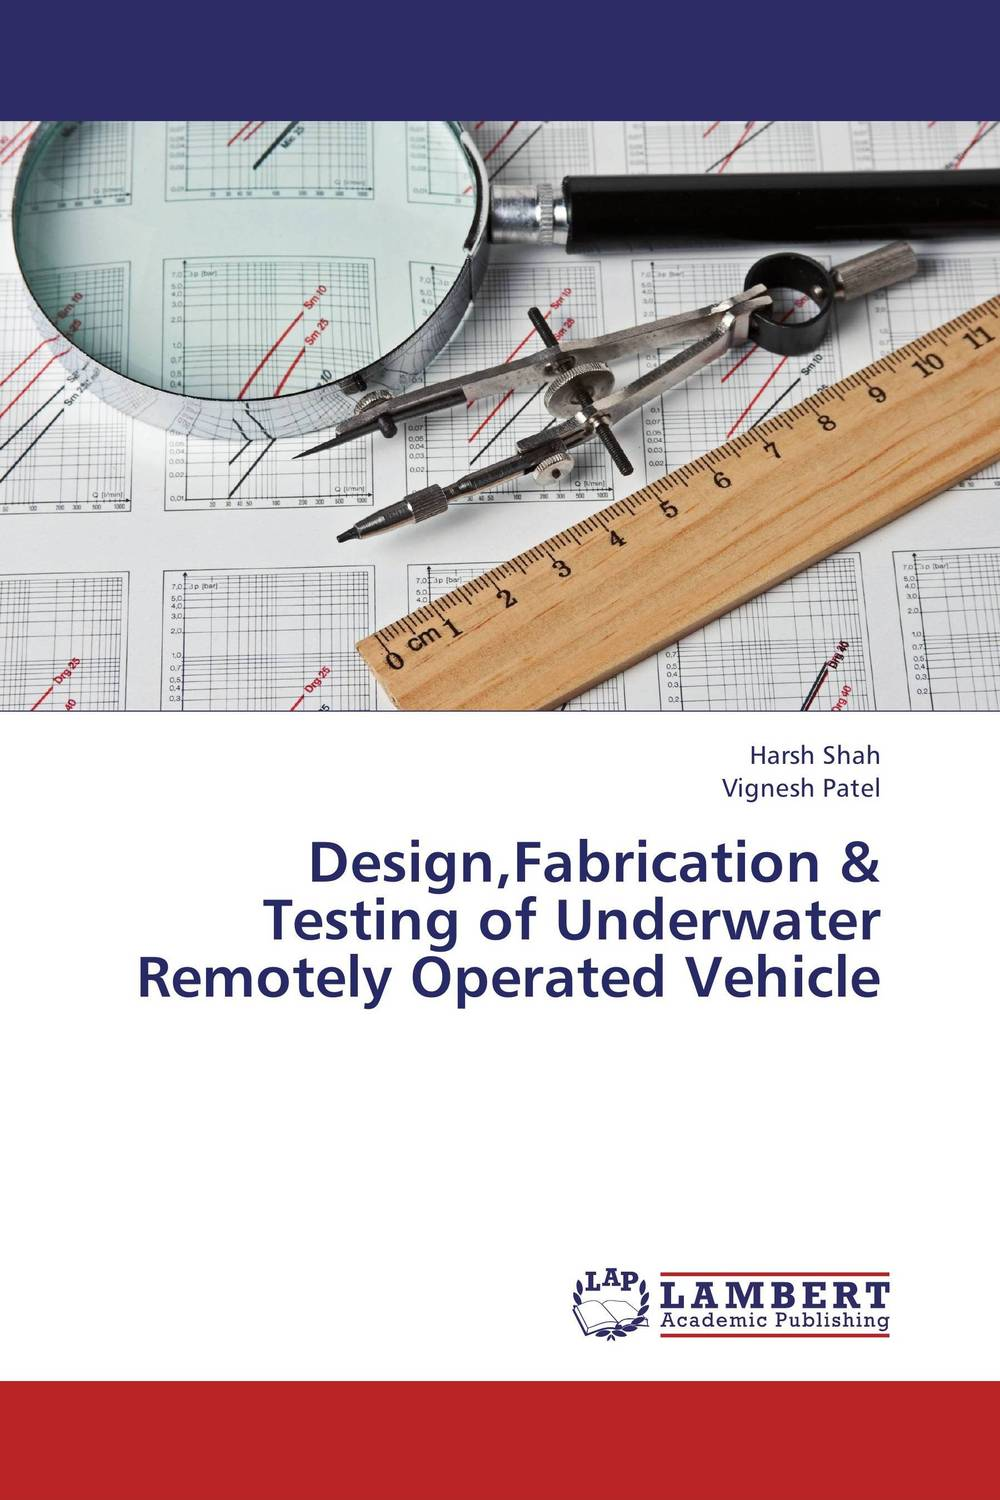 Design,Fabrication & Testing of Underwater Remotely Operated Vehicle design fabrication